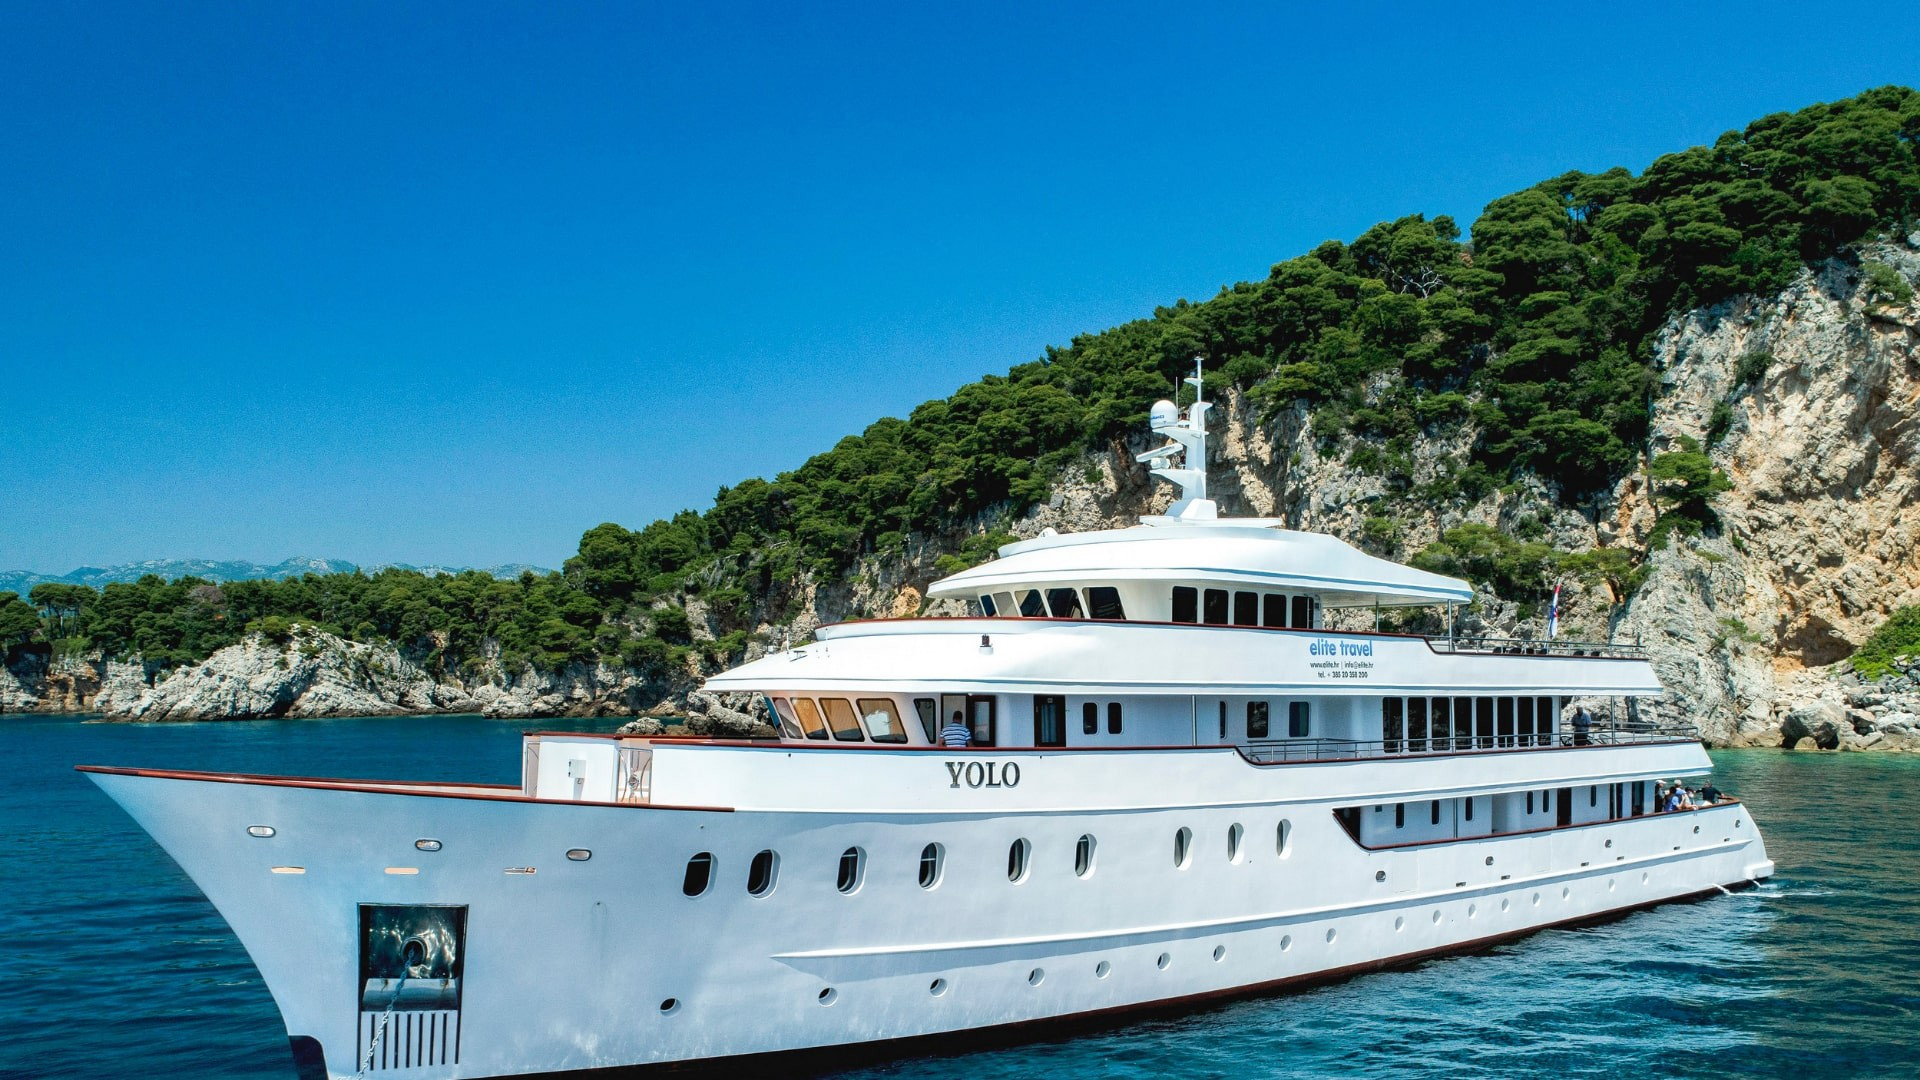 Yolo | Croatia Holidays Croatia Cruise